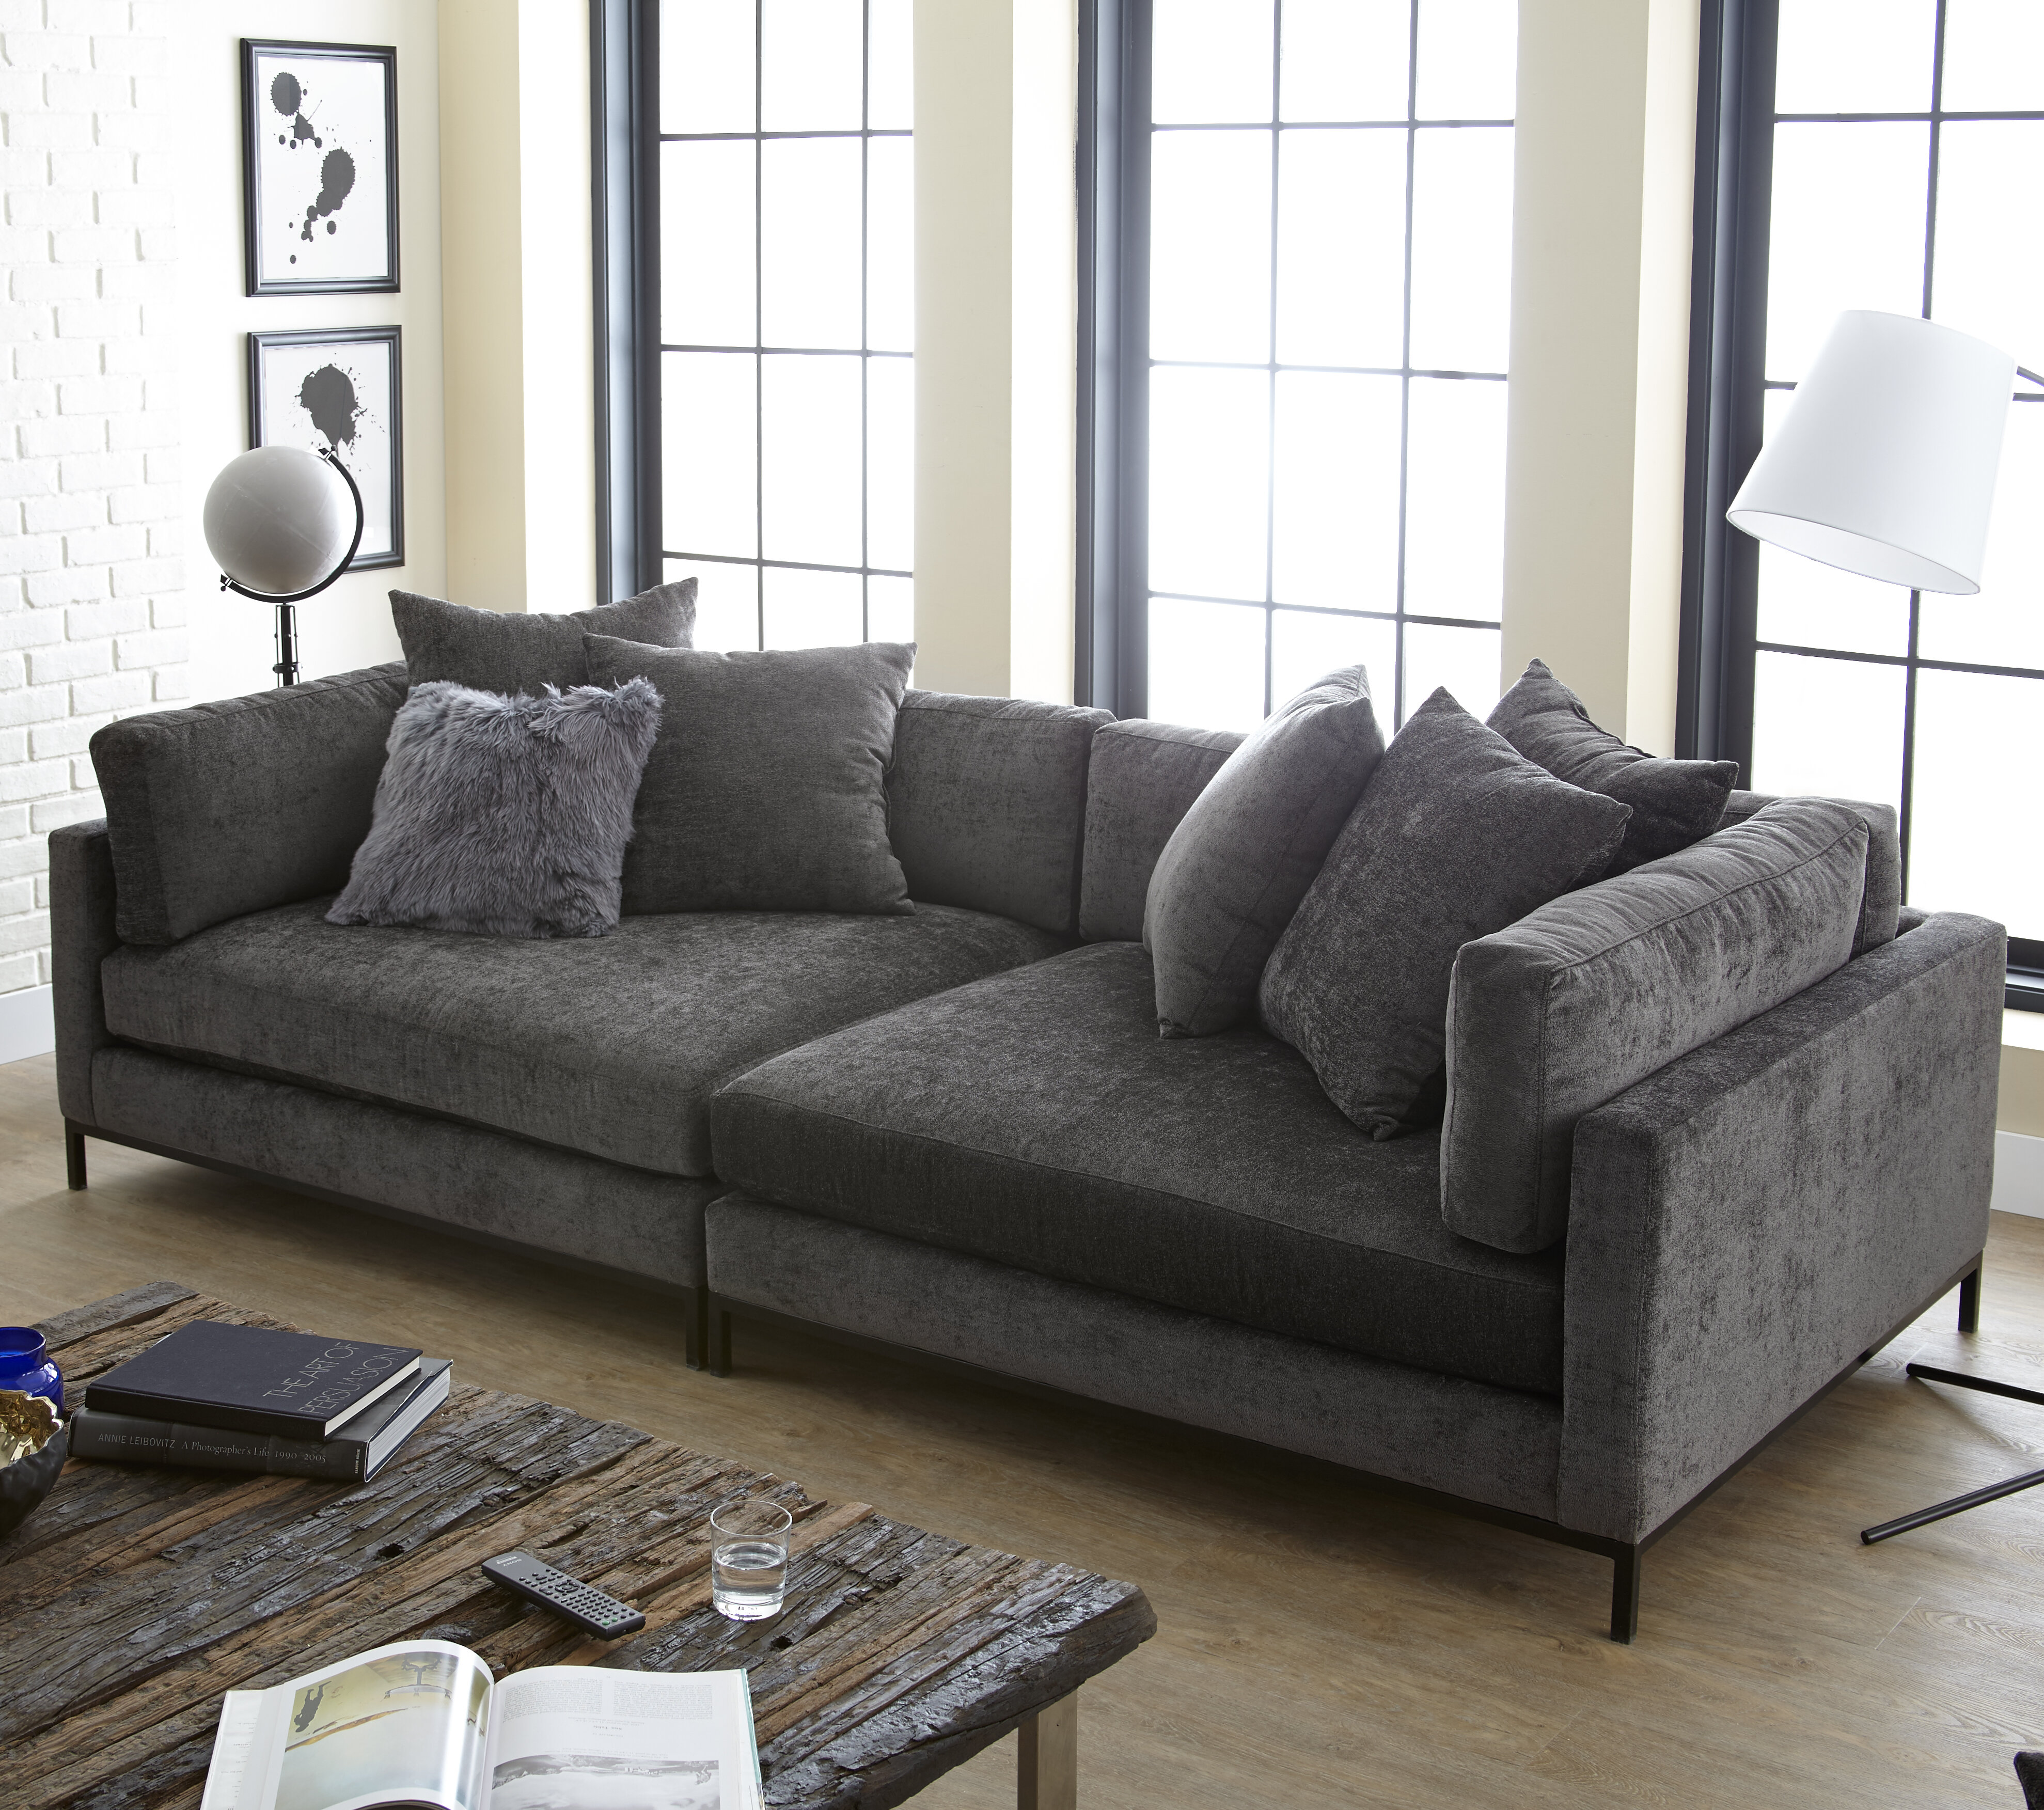 Online store on the couch - buy without getting up from the couch